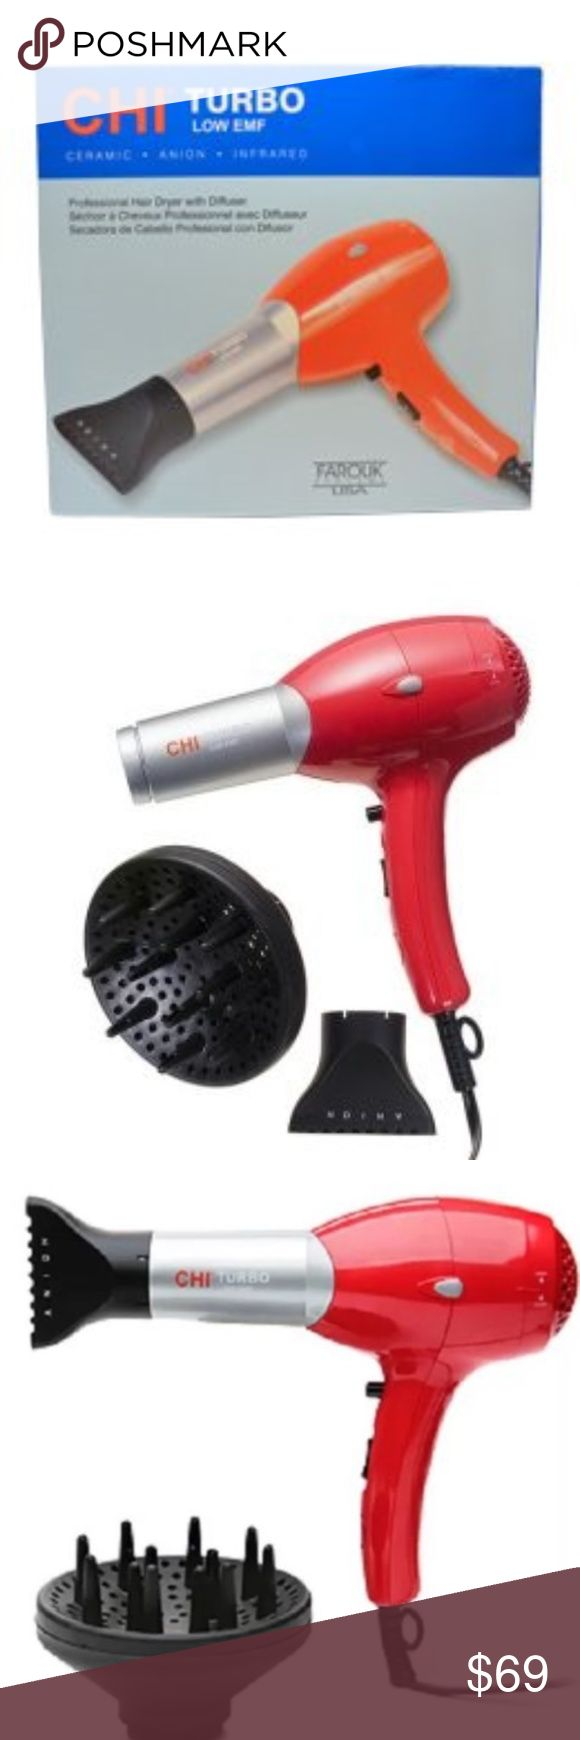 Chi Turbo Low EMF Hairdryer New The CHI Turbo Hair Dryer has ceramic, ionic technology . Turbo power dries hair from the inside out while reducing frizz and static electricity. Hair is softer, shinier and dry in half the time. No wonder the pros like this dryer so much! 1500 Watts Turbo power produces more air flow Ceramic ionic technology reduces frizz and static, enhances shine Negative Ions dry hair up to 50% faster Far Infrared heat gently dries the hair from the inside out 2 Speed…